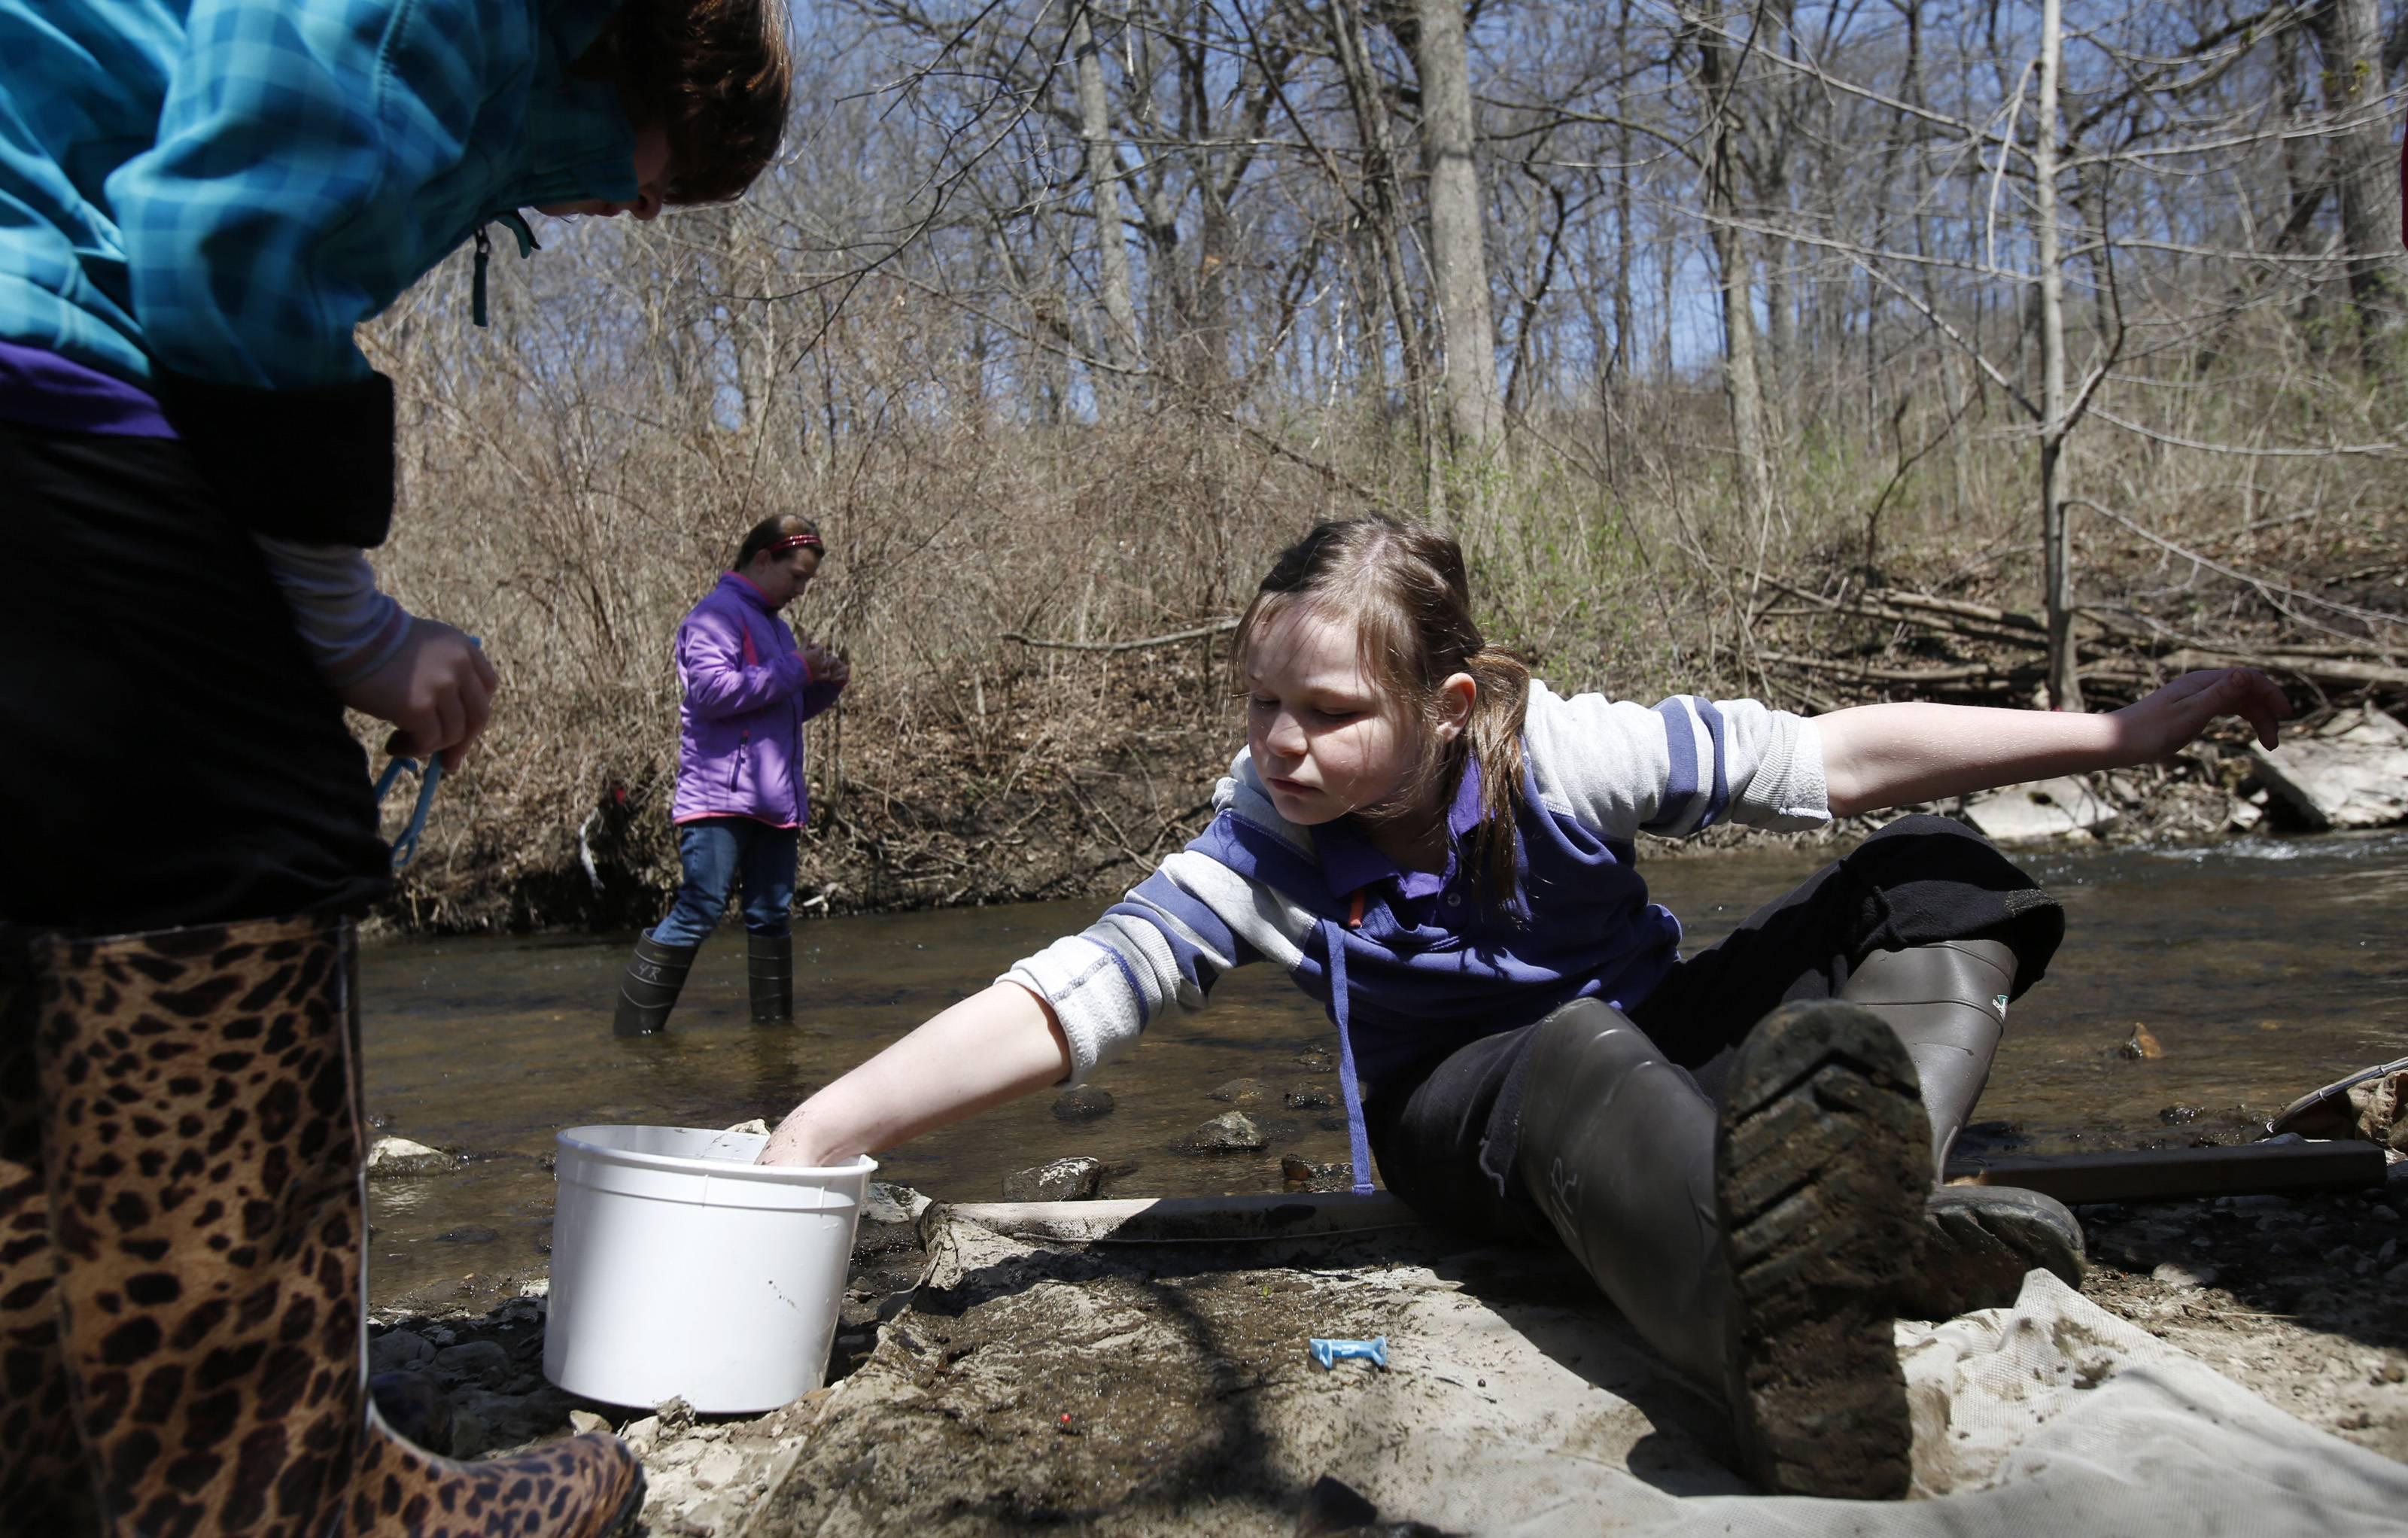 Einstein Academy third-grader Andrea Rathjen, of Elgin, works on specimens she collected with classmates Tuesday at the Tyler Creek Forest Preserve in Elgin. Looking over her work is second-grade classmate Jordan Merlo of Bartlett, as third-grader Annabel Ehreth, of Elgin, walks the creek in the background. Einstein Academy students spend a day studying Tyler Creek each Earth Day, in partnership with the Friends of the Fox organization, to help monitor the health of the stream.